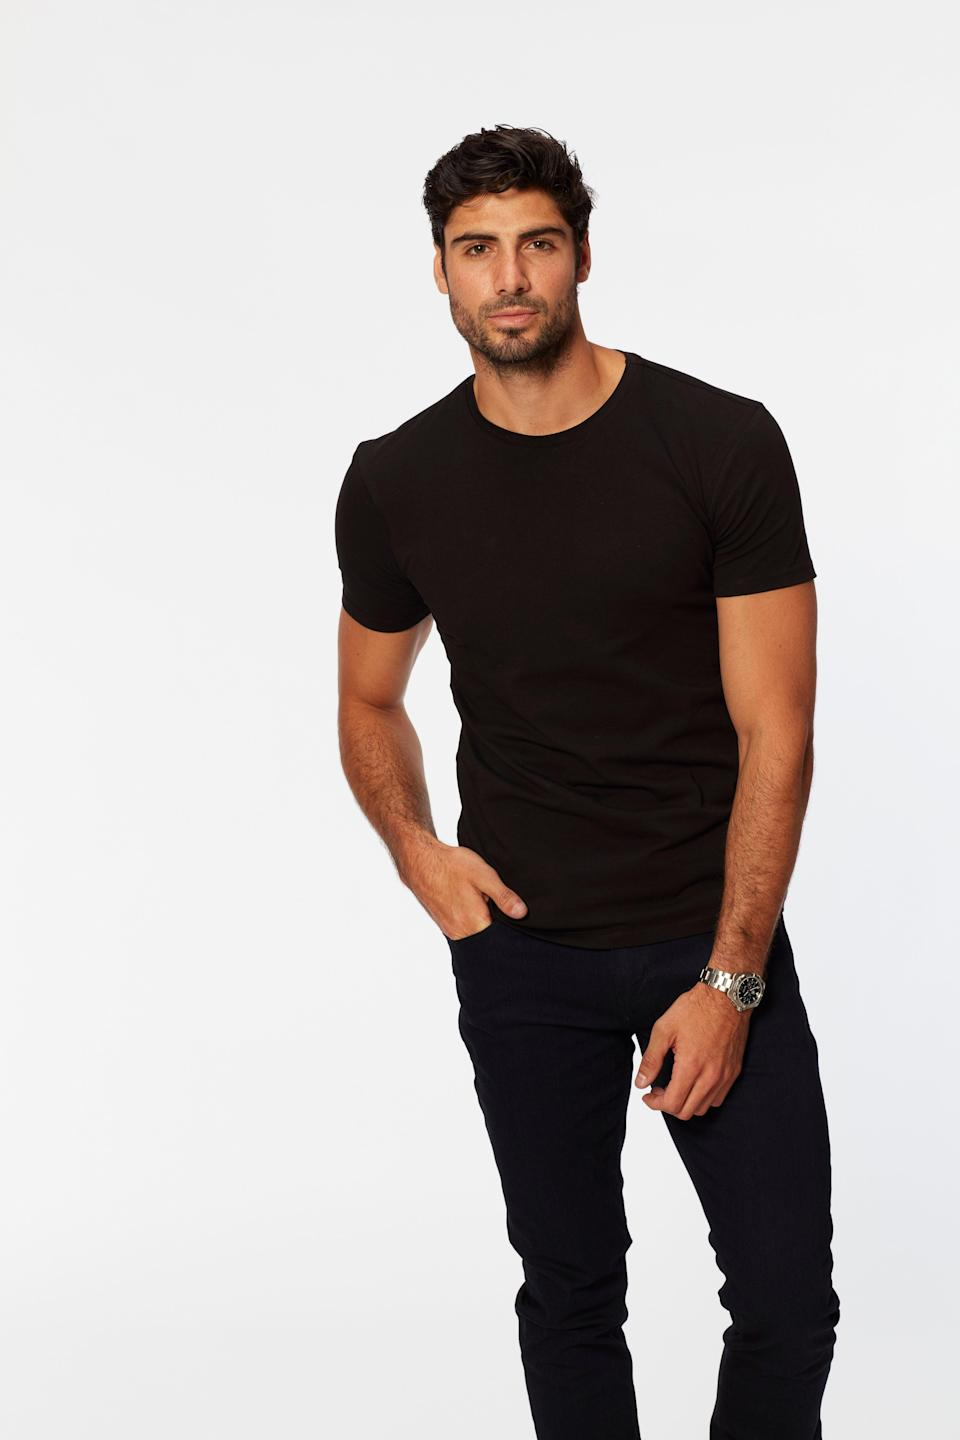 """Brandon is """"an Italian stallion in the prime of his life"""" who admits """"he wore way too much Ed Hardy back in the day."""" These should be red flags, but…those arms. His eyes. I am weak!"""